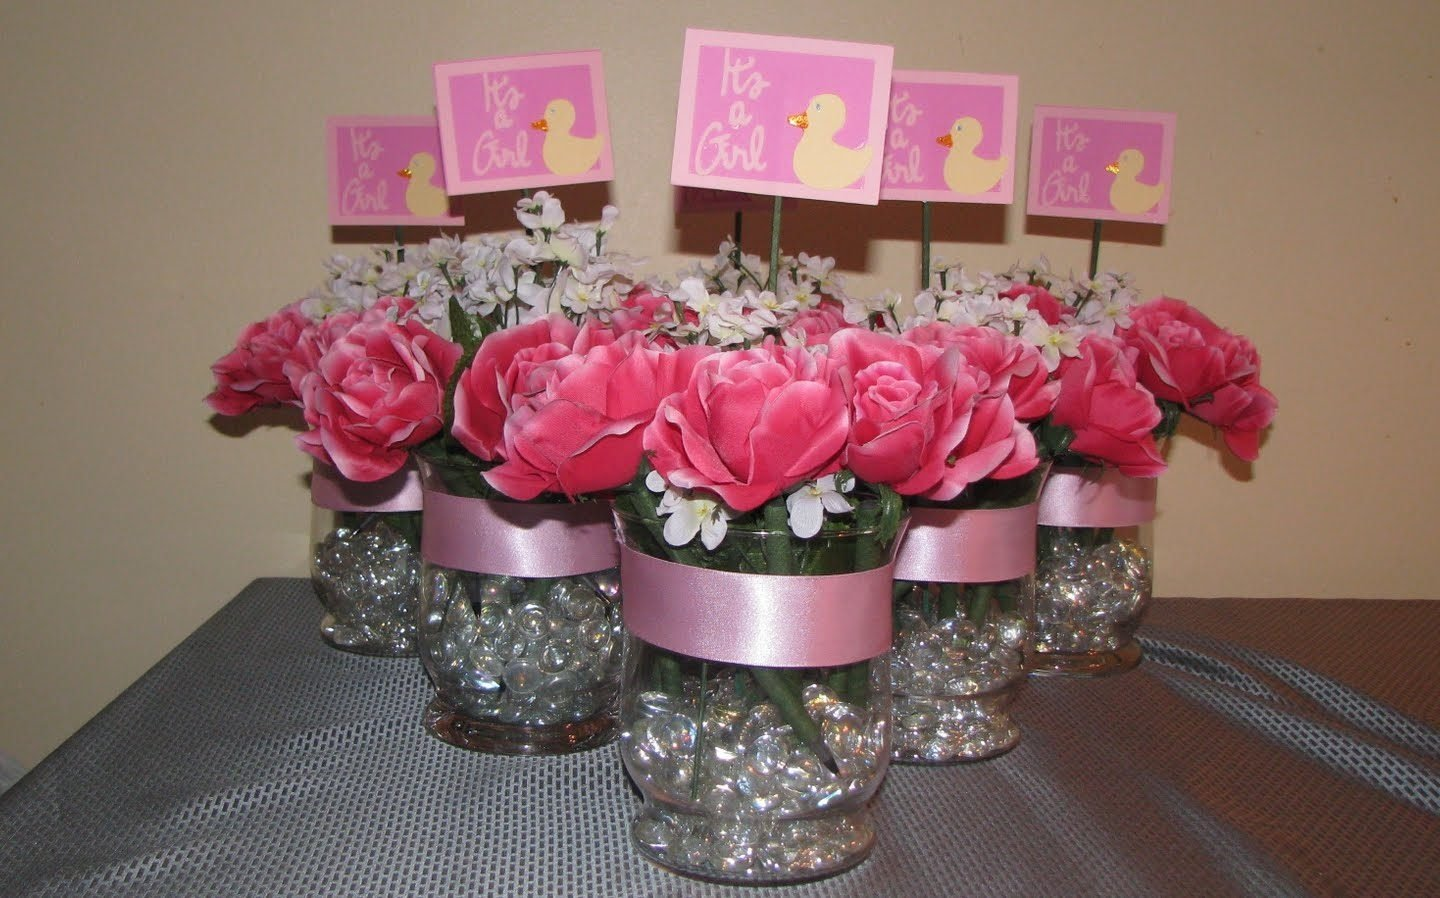 10 Gorgeous Ideas For Centerpieces For Baby Shower girl baby shower centerpiece ideas impressive table pink and gold 2021